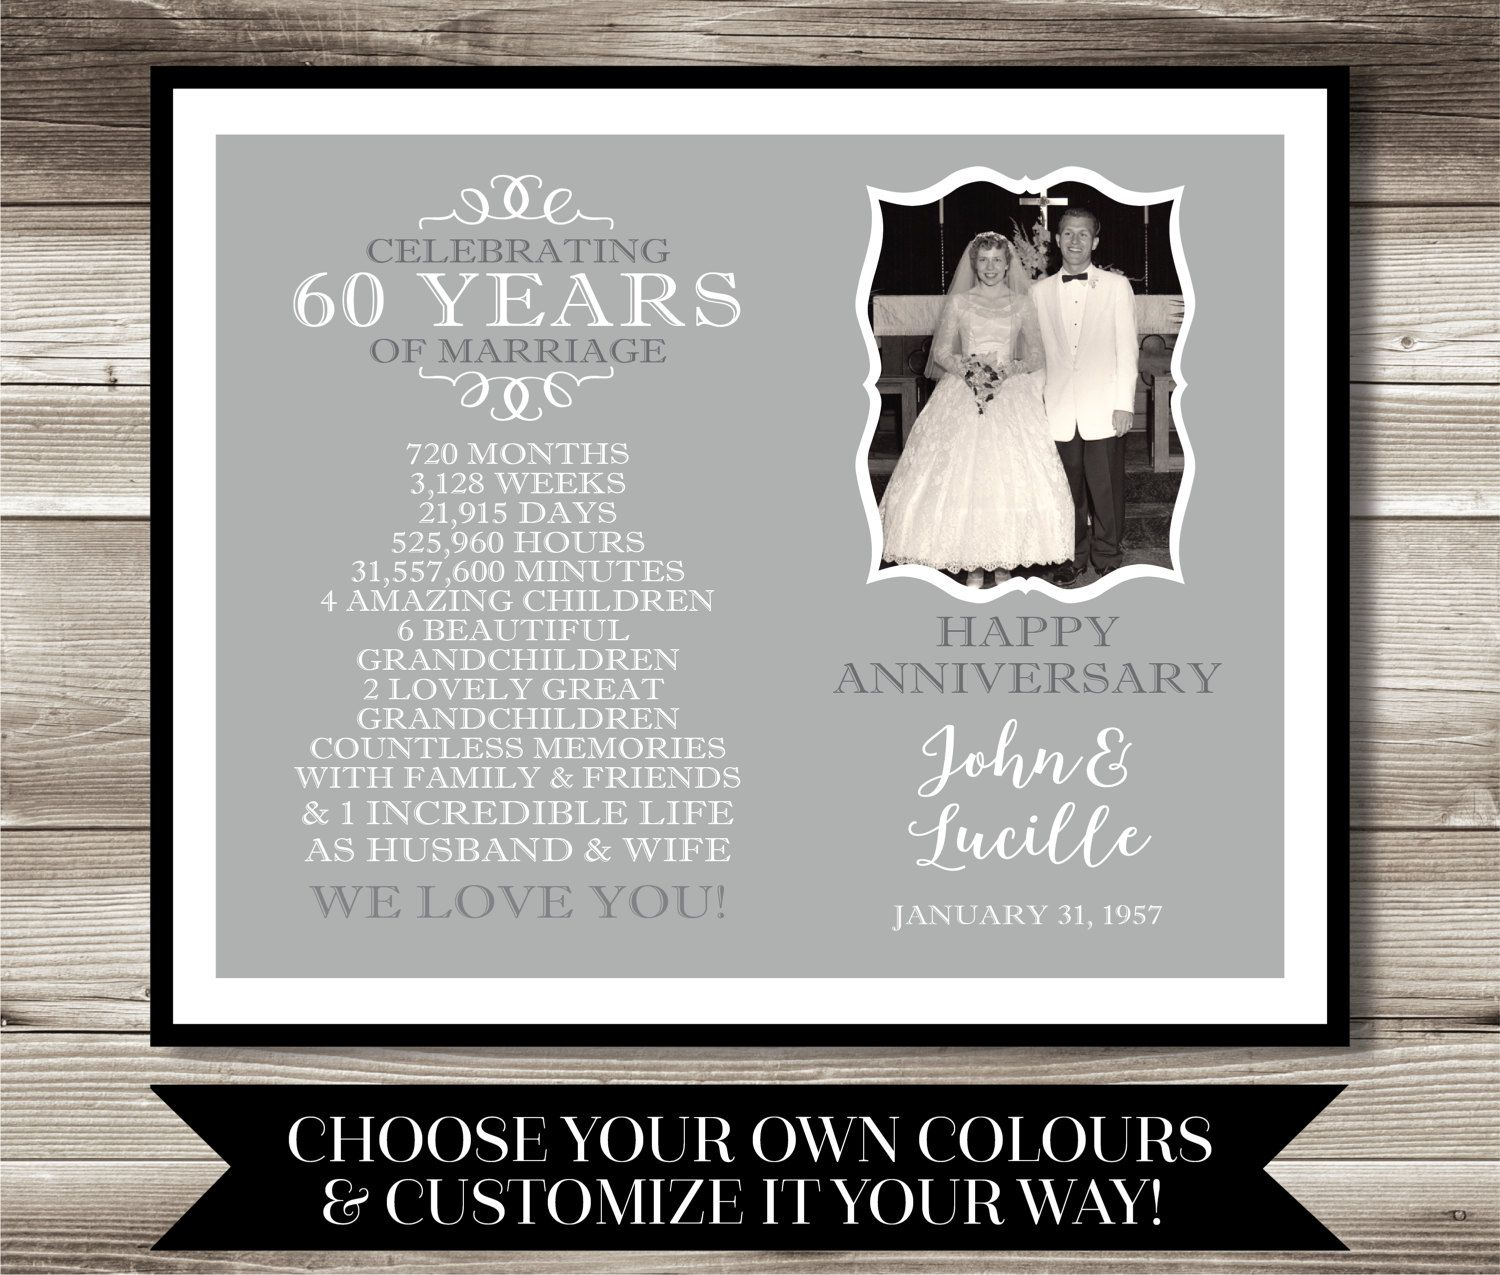 Gifts For 60th Wedding Anniversary: 60 Year Anniversary Photo Gift Digital Print 60th By